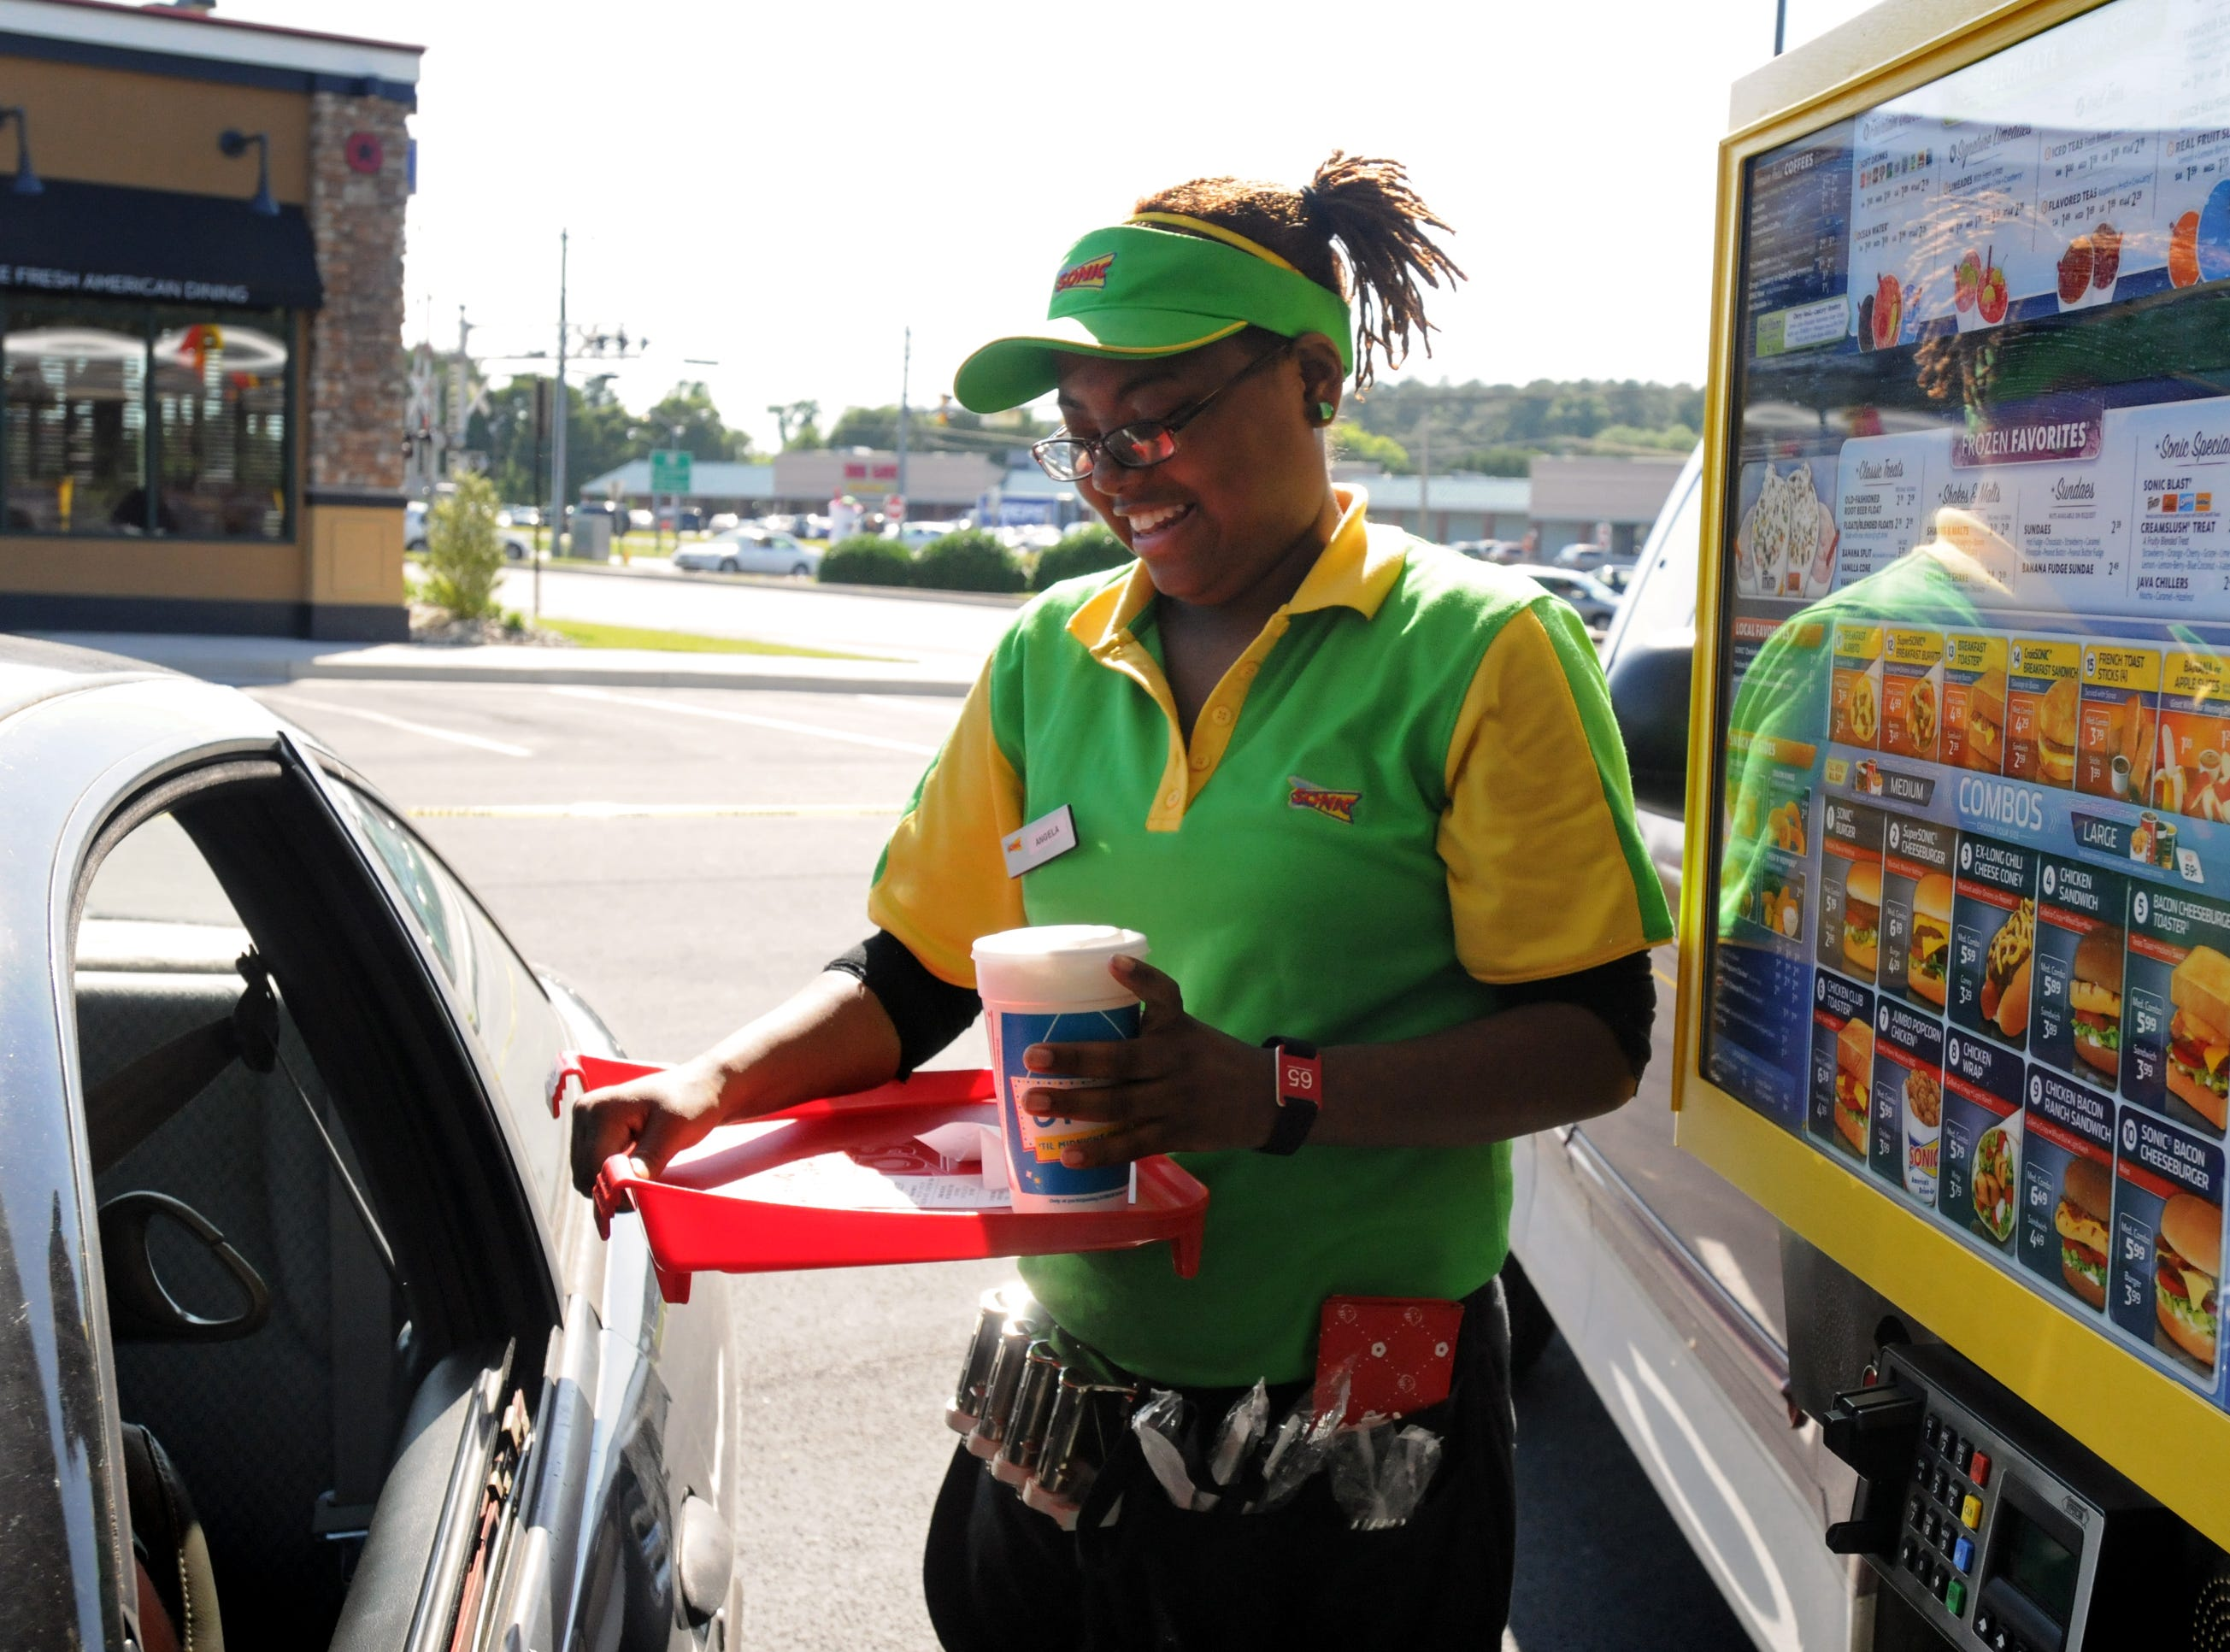 051909-- Laura Emmons photo-- Car-hop Angela Foreman of Salisbury delivers food to a car as customers flocked to the newly opened Sonic Drive-In in Fruitland on May 19, 2009.